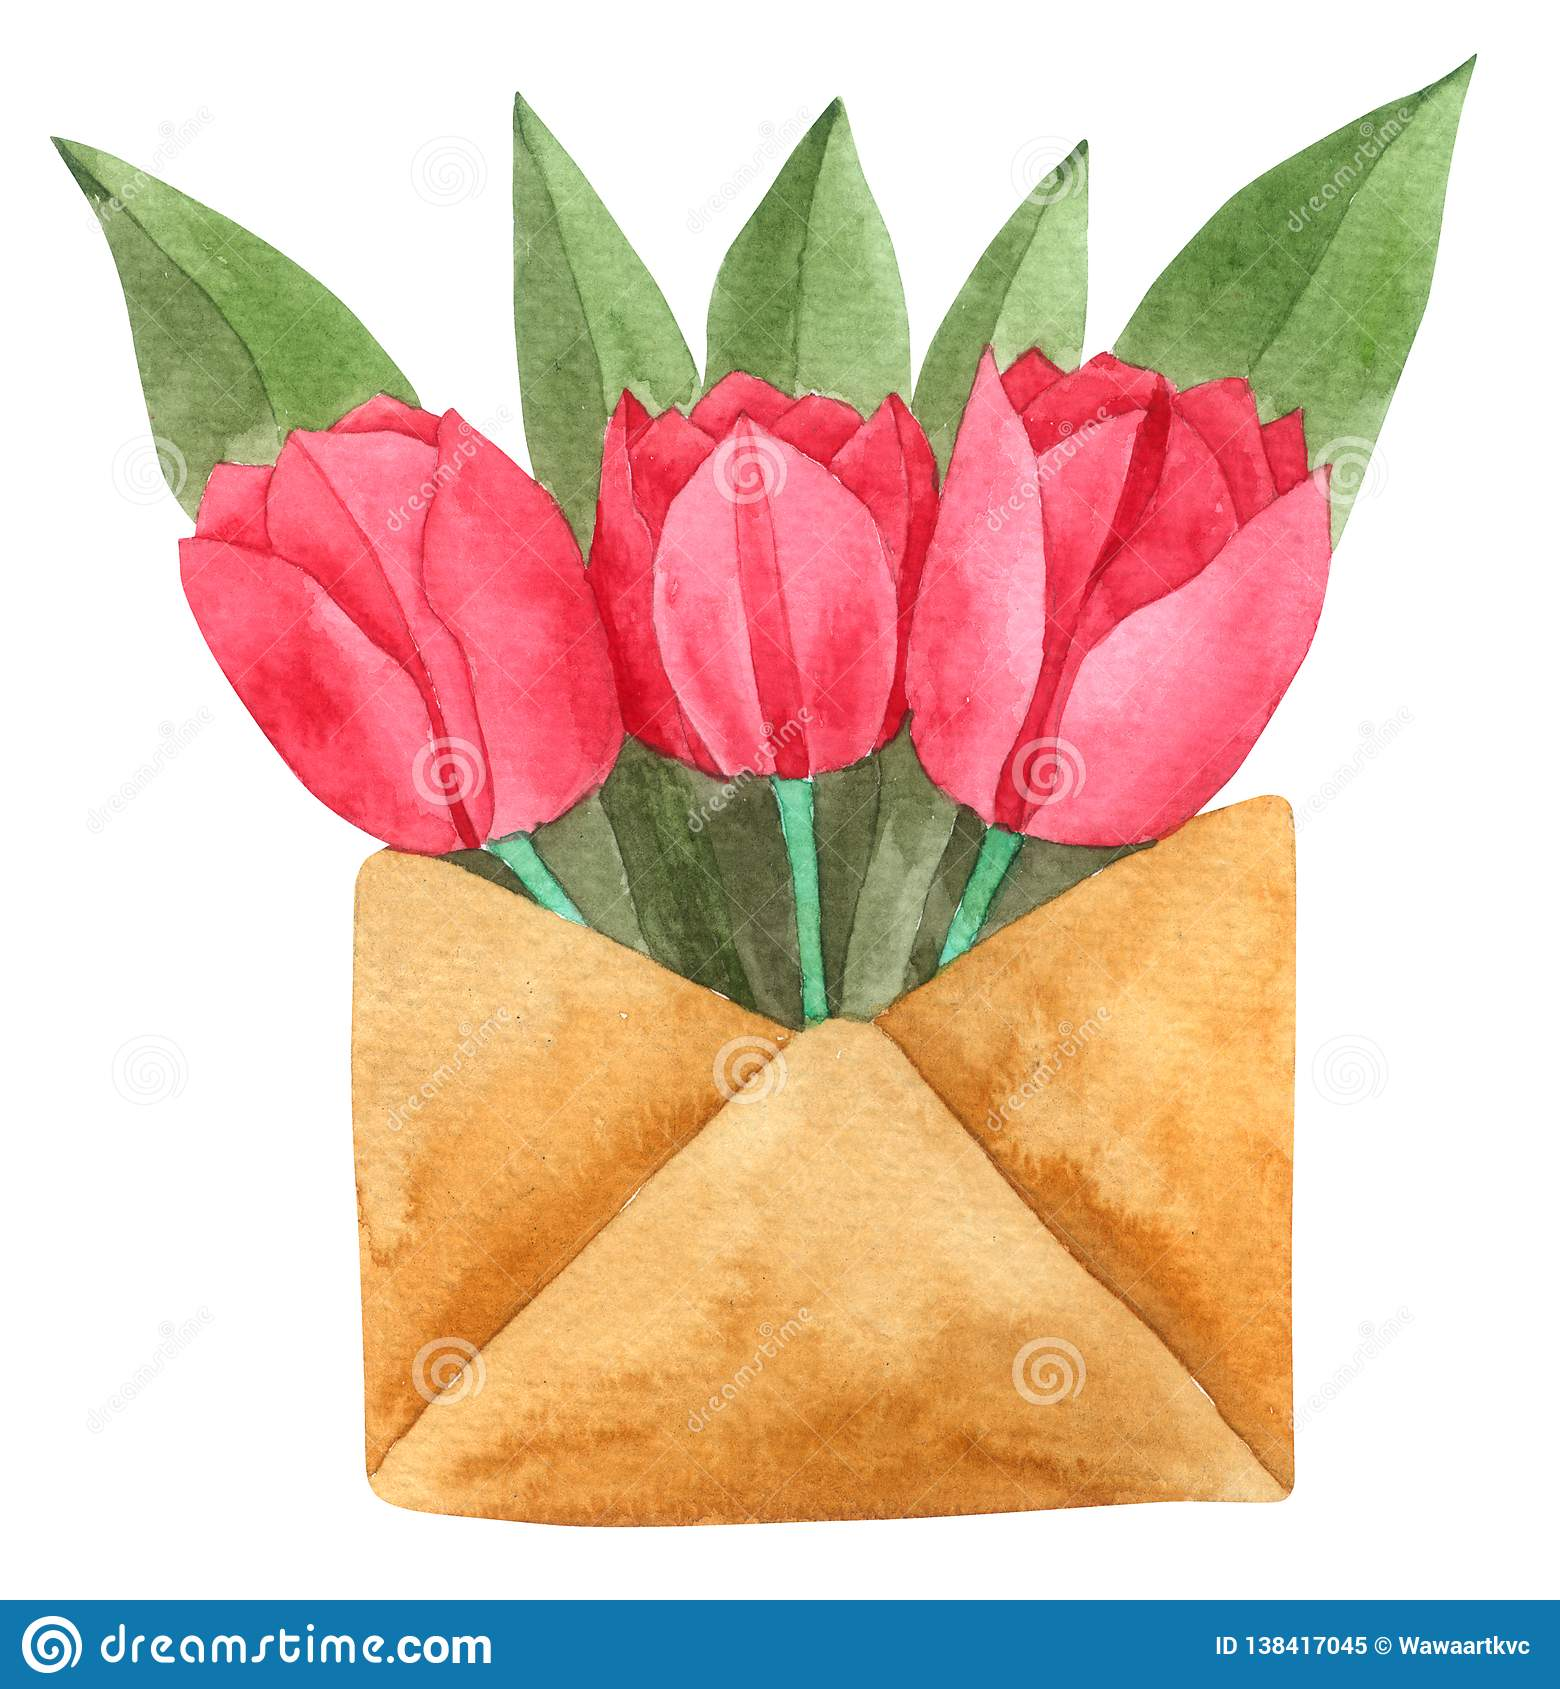 Tulip Flower in Envelope watercolor isolated on white background , Hand drawn painted for Greeting Card ,Wallpaper